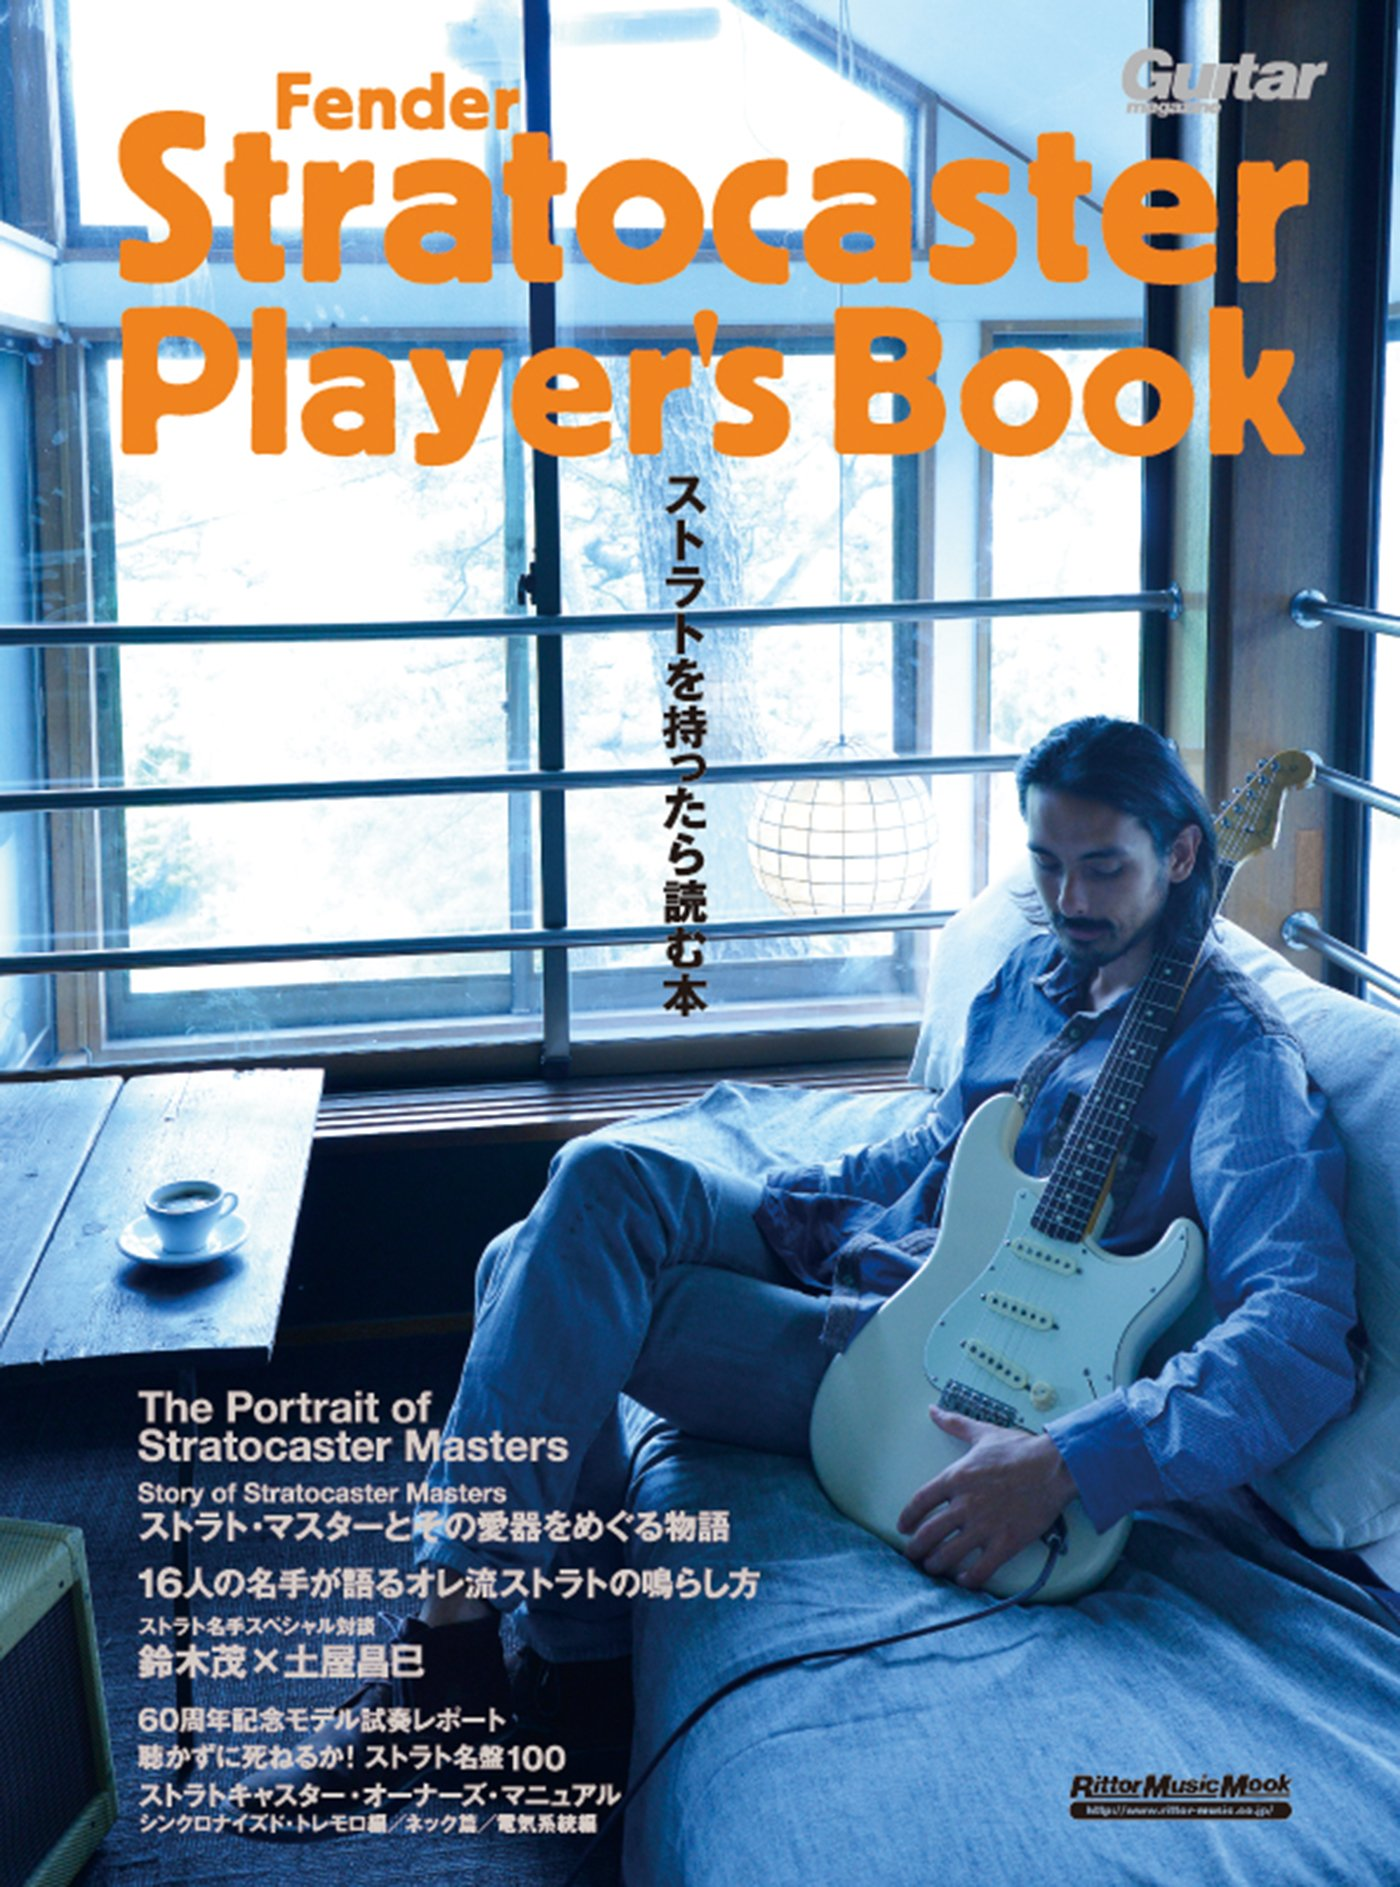 The Book to Read If You Have a Fender Stratocaster Player's Book Stratford (Rittor Mook) ebook